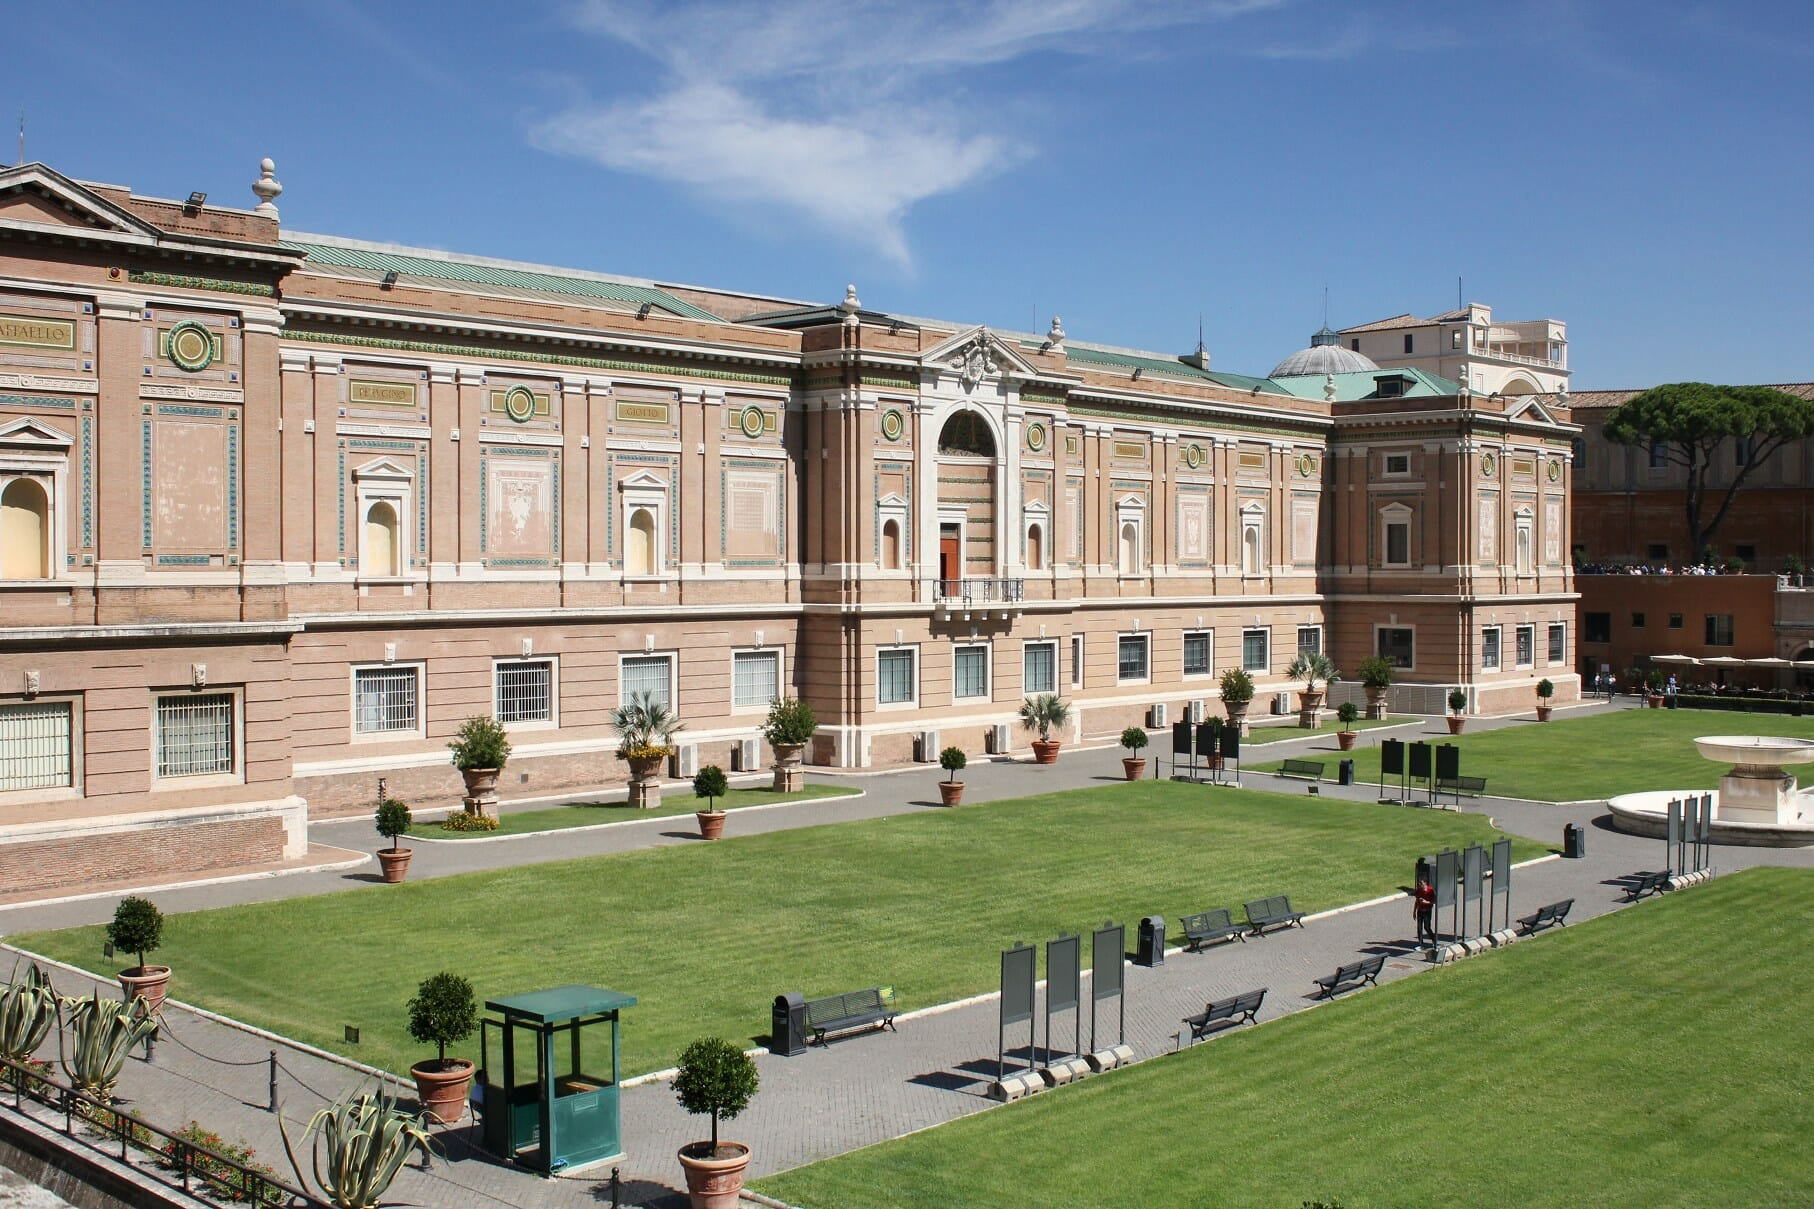 Best things to do in Rome Museum Rome